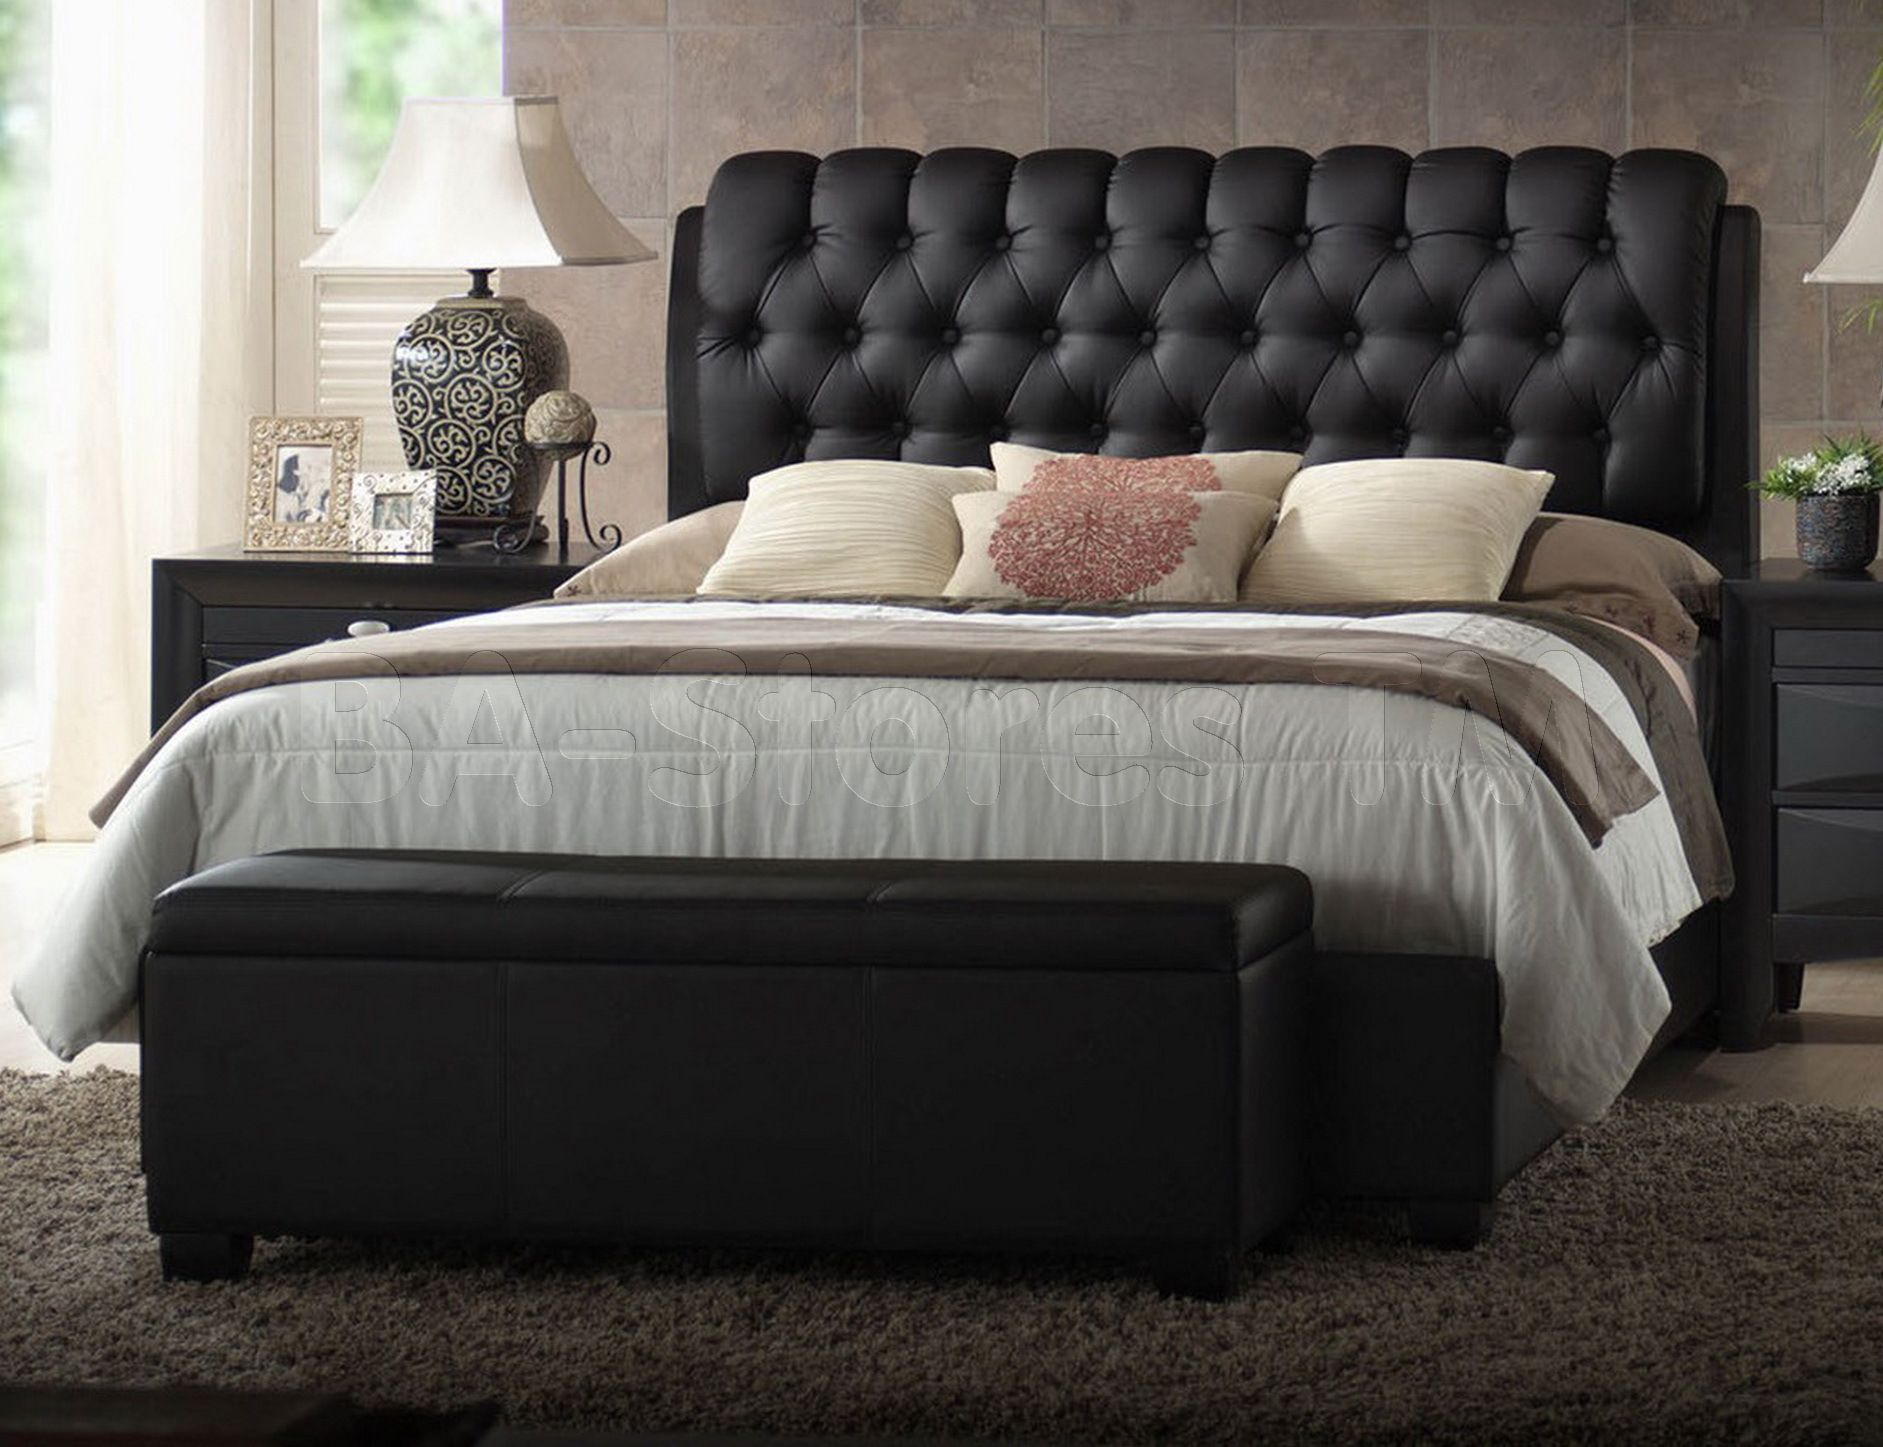 King Size Tufted Headboard With Contemporary Jazmin Black Modern Bed Design